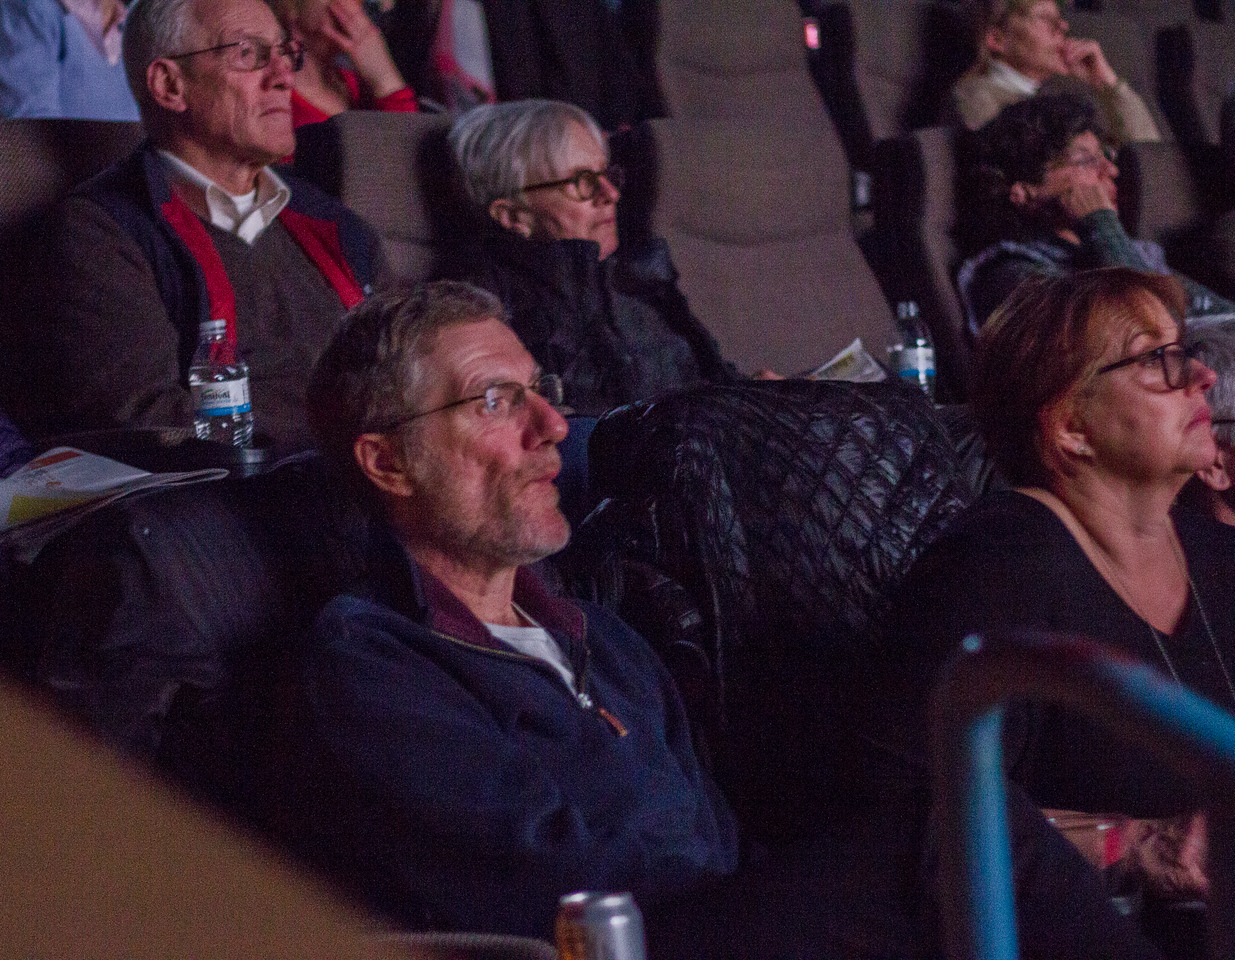 Patrons enjoy the trailer reel during the 2018 First Look at the Fest.